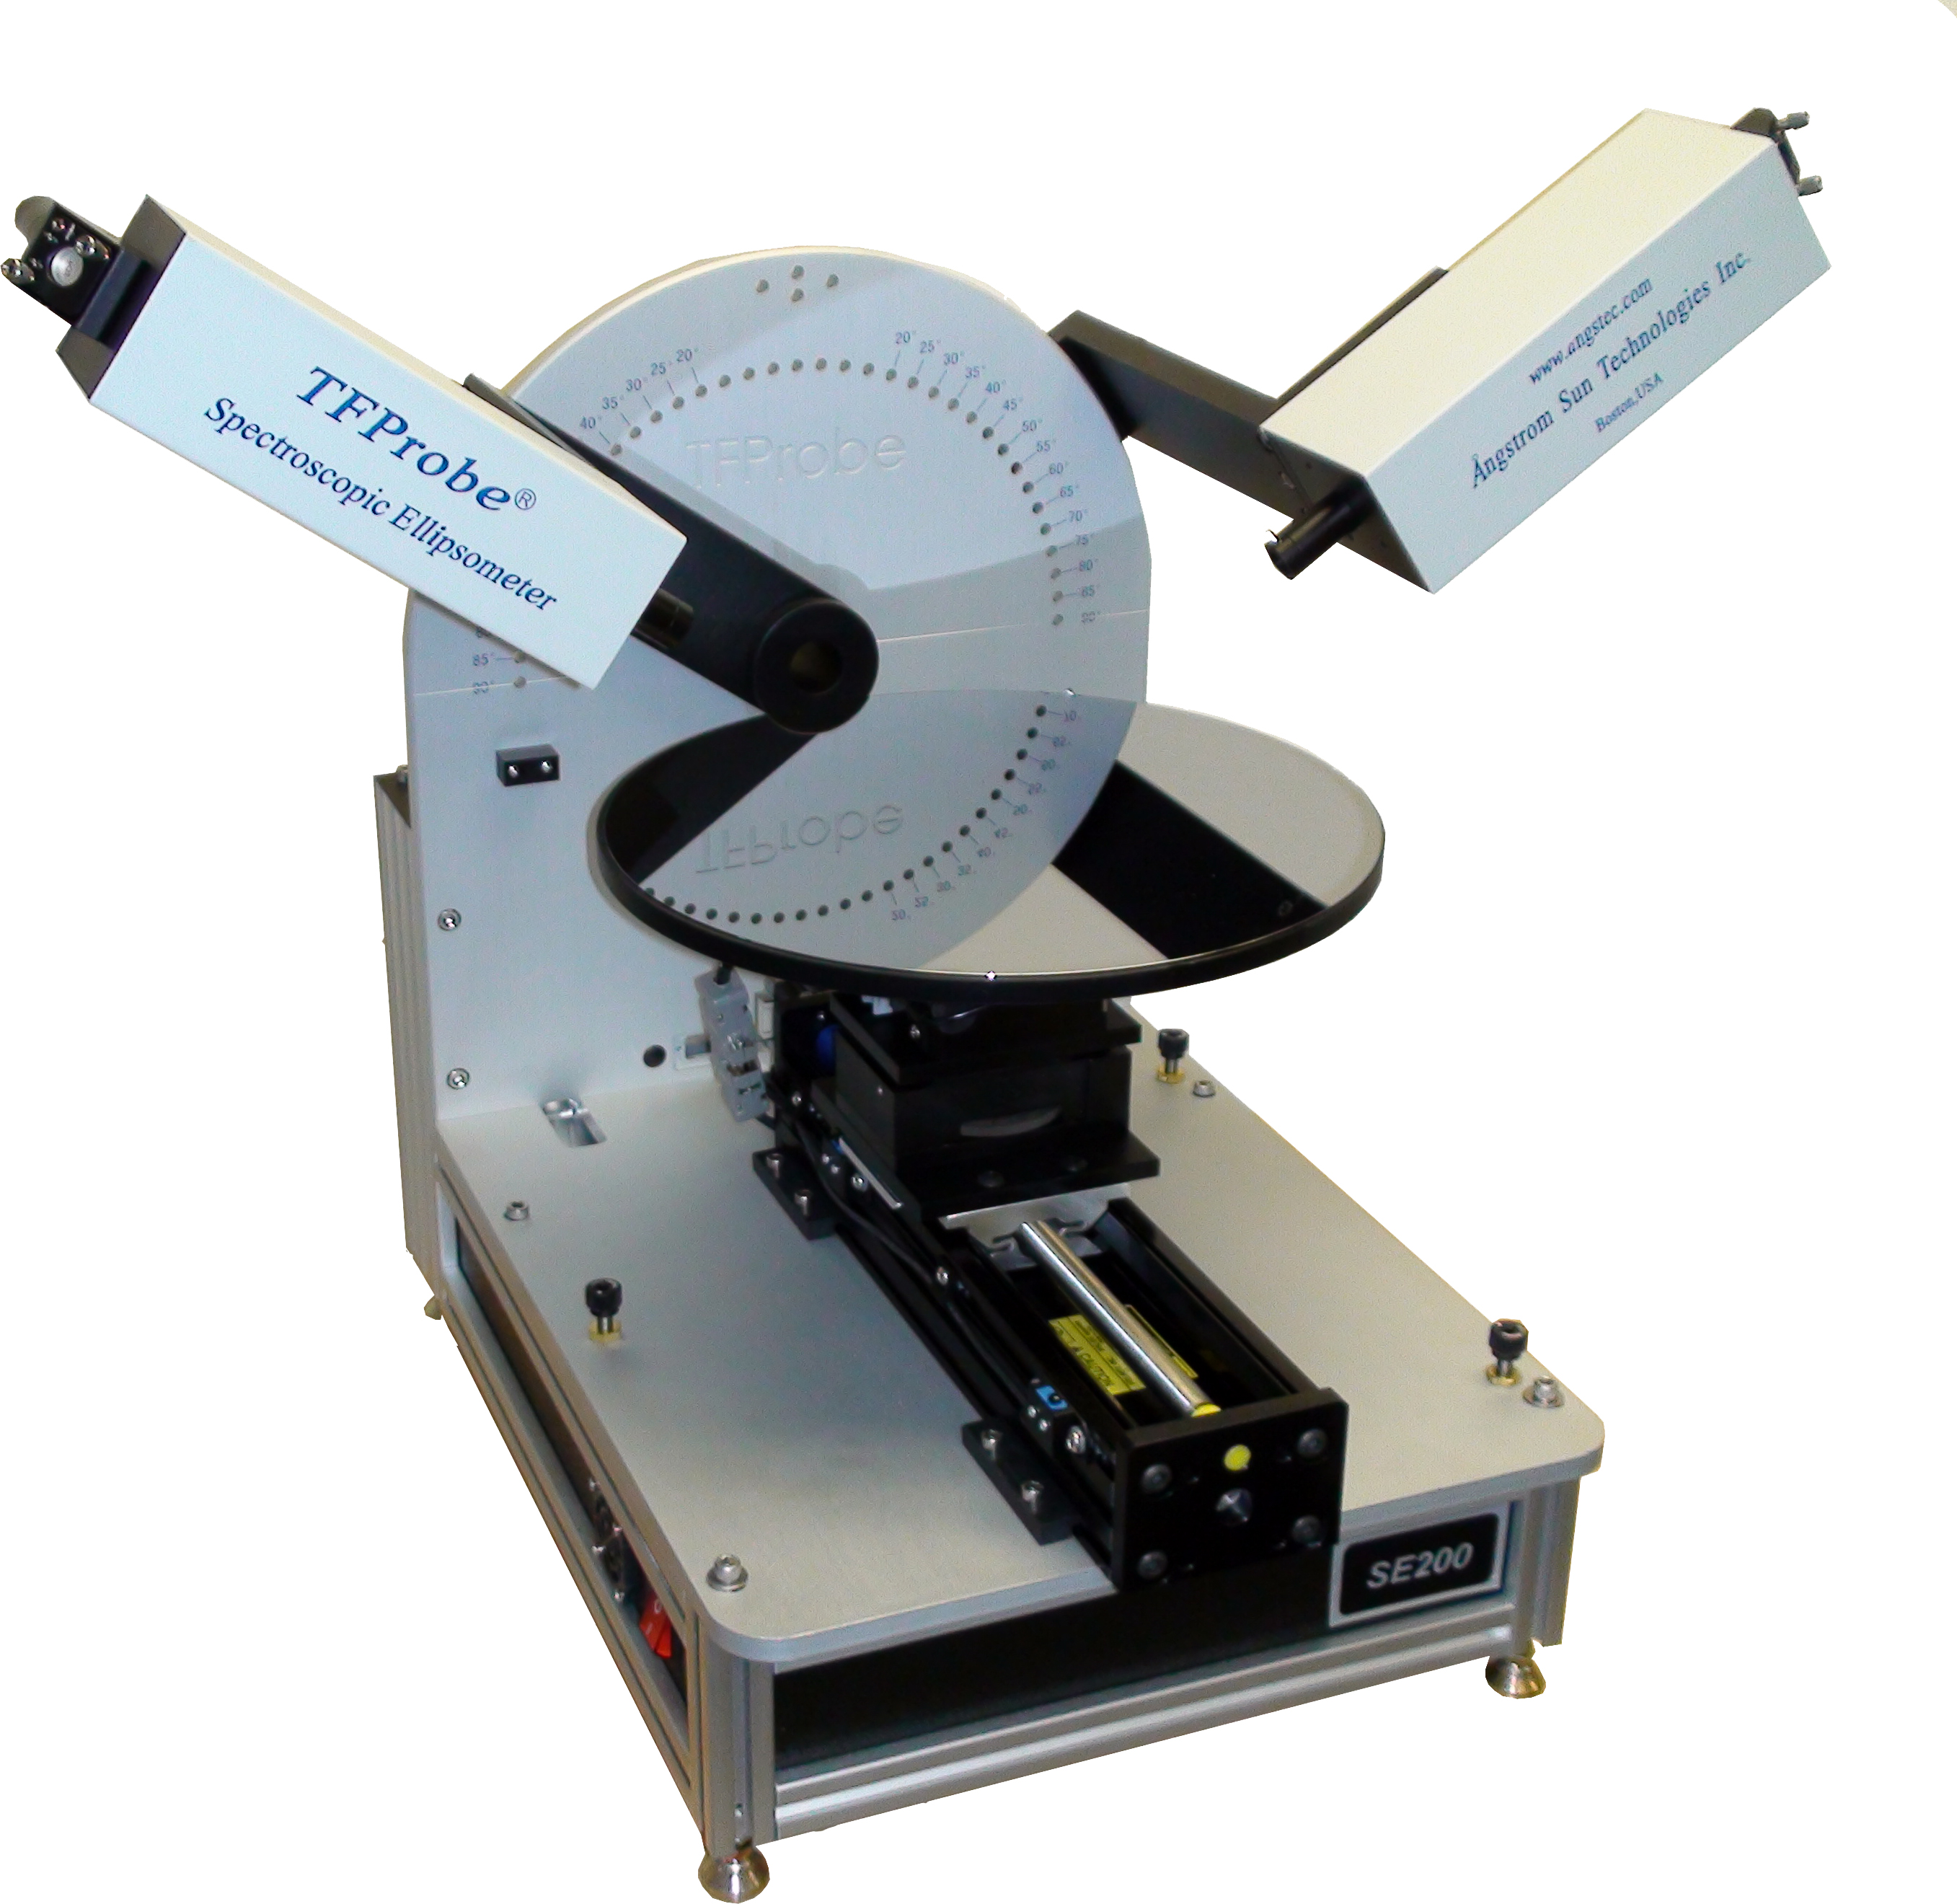 Spectroscopic Ellipsometer Model SE200BM-M300